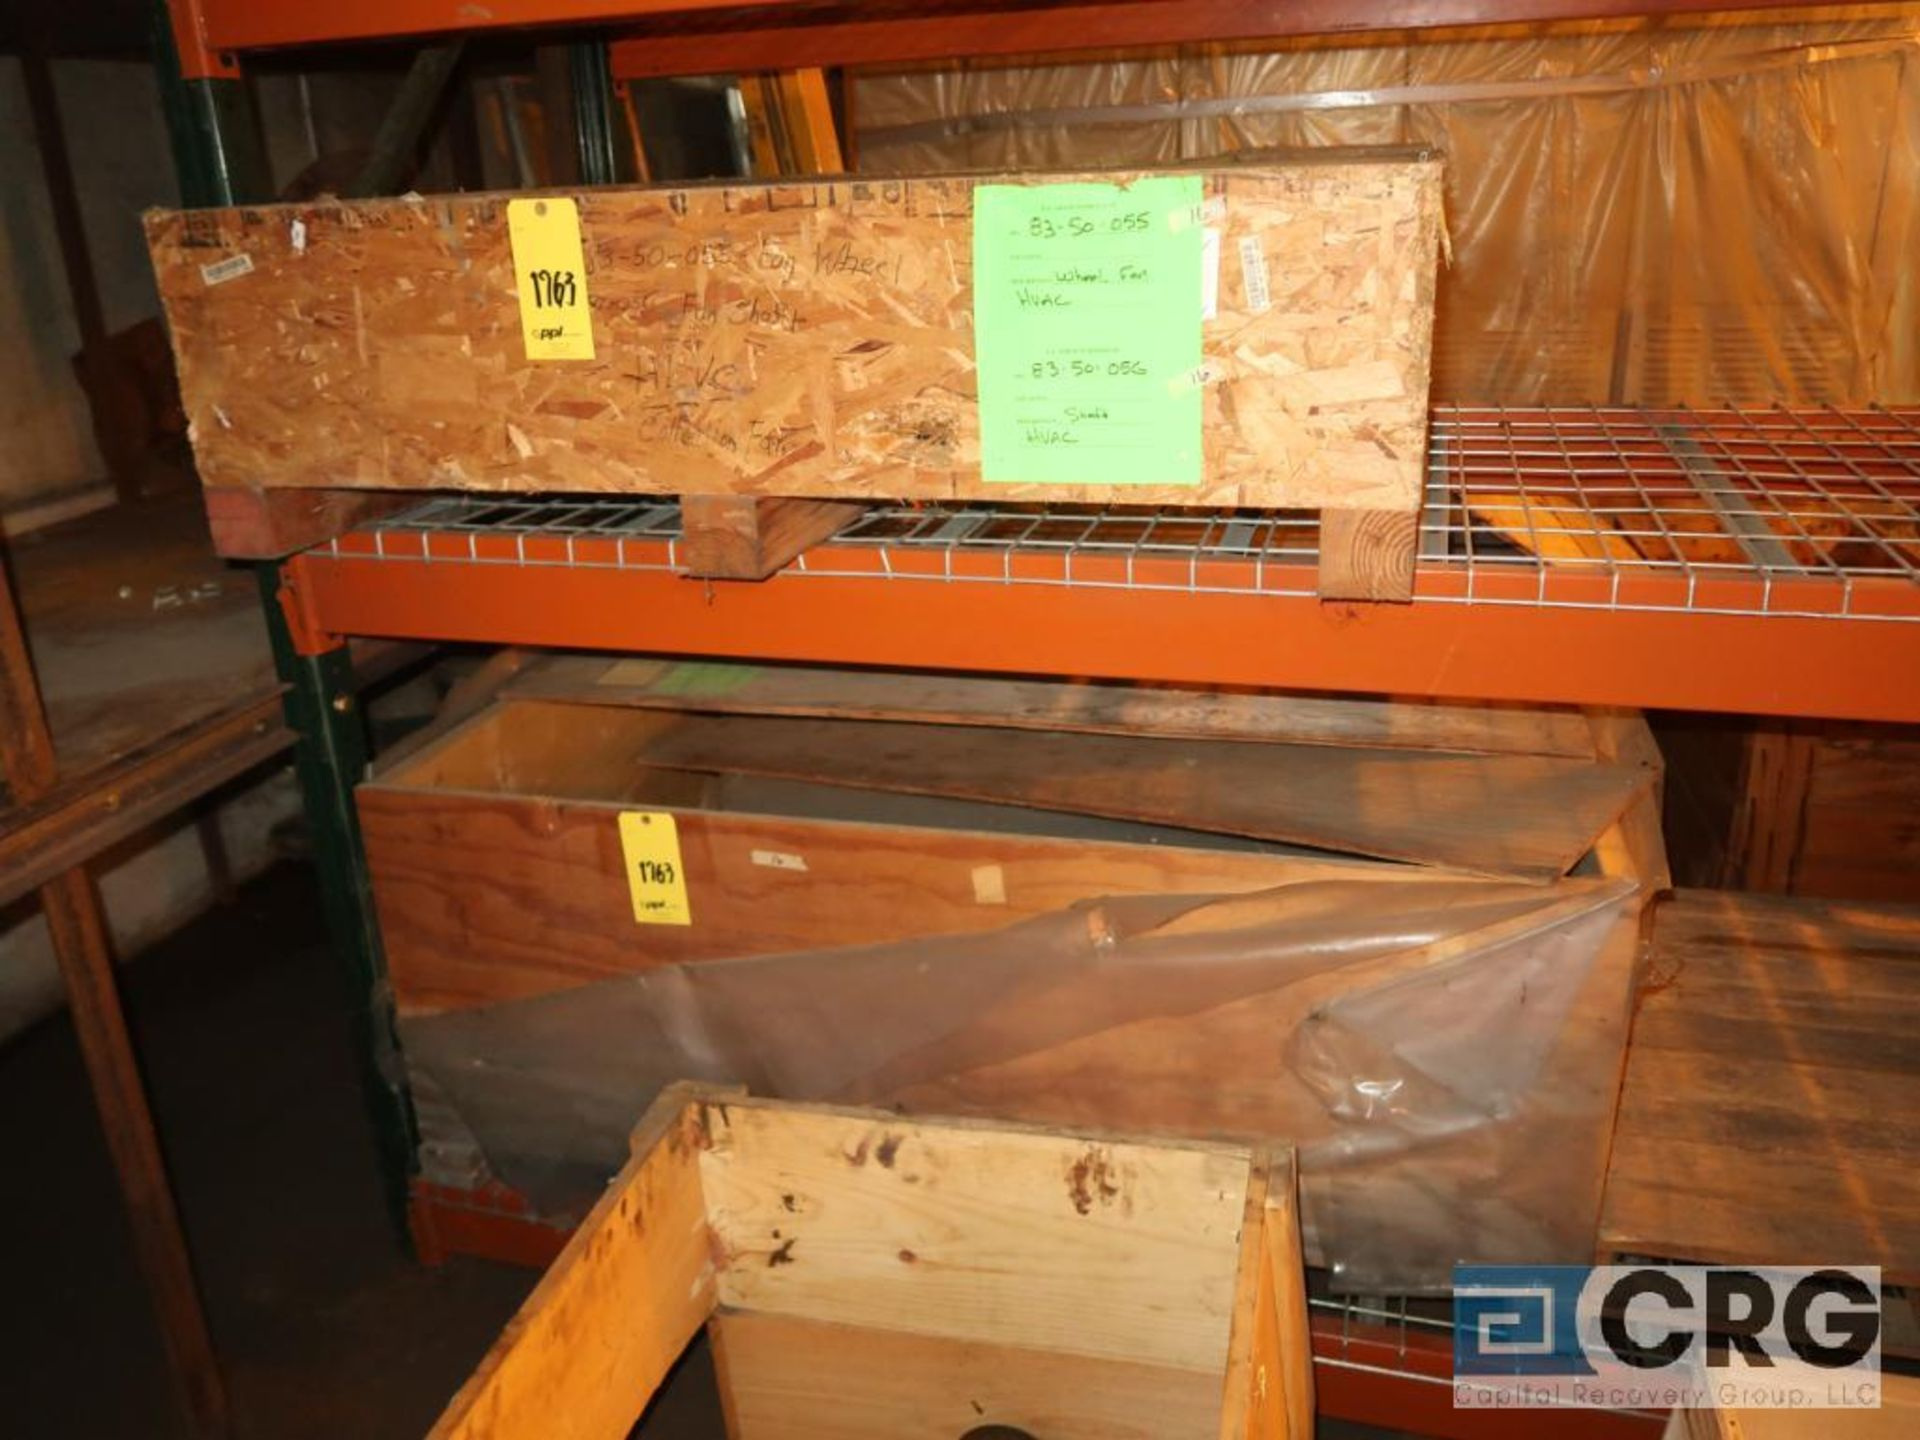 Lot of assorted parts including expansion joint, valves, fan blade, and rotors (Next Bay Cage Area) - Image 3 of 15